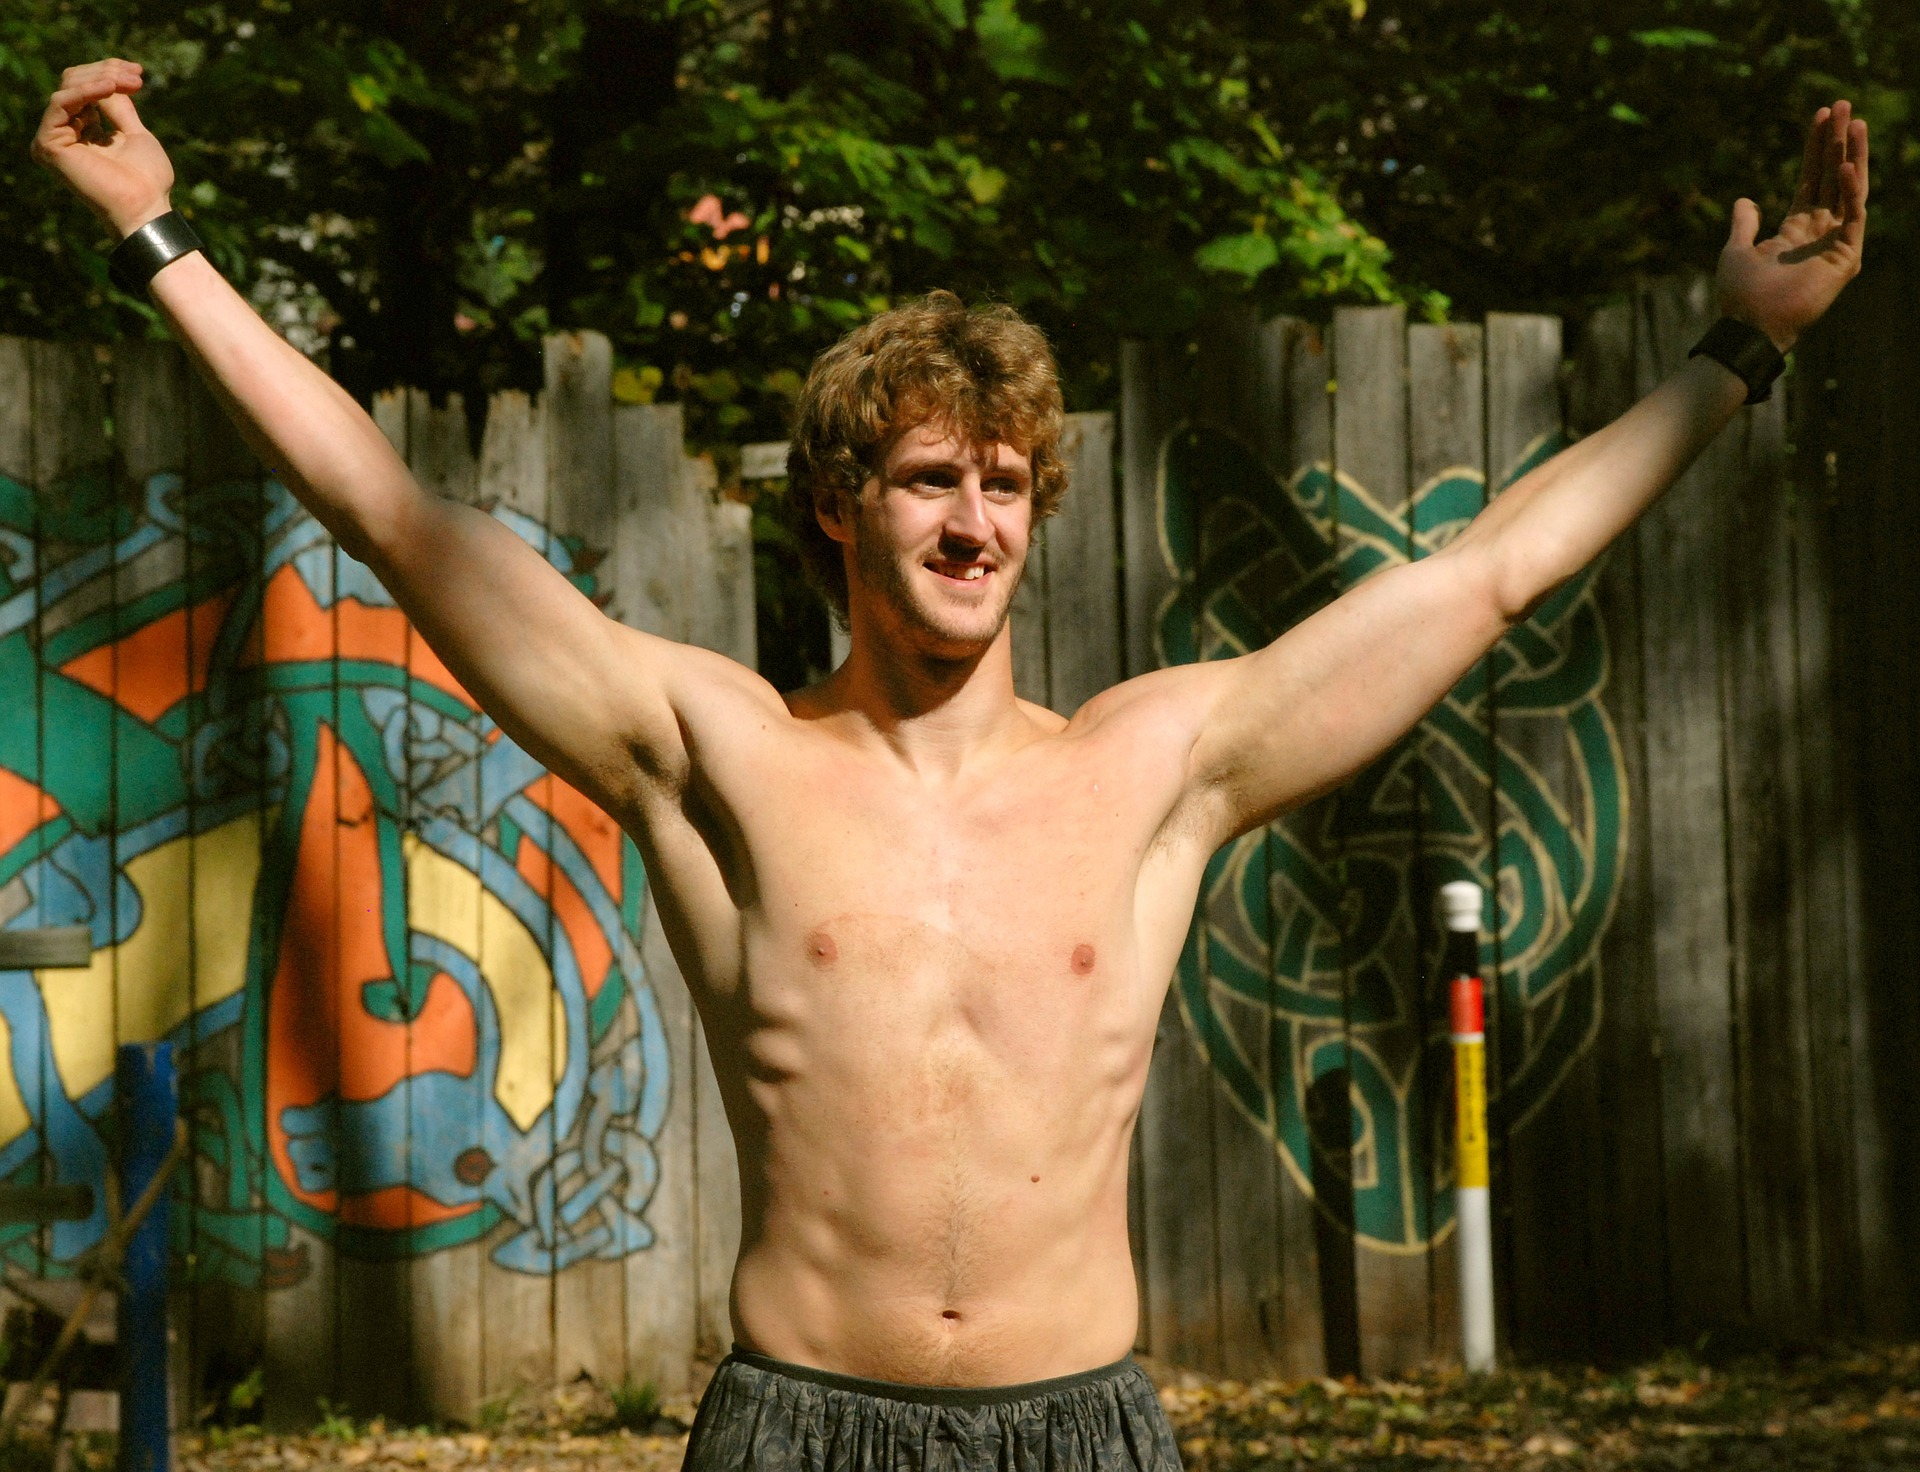 shirtless man with raised arms smiling